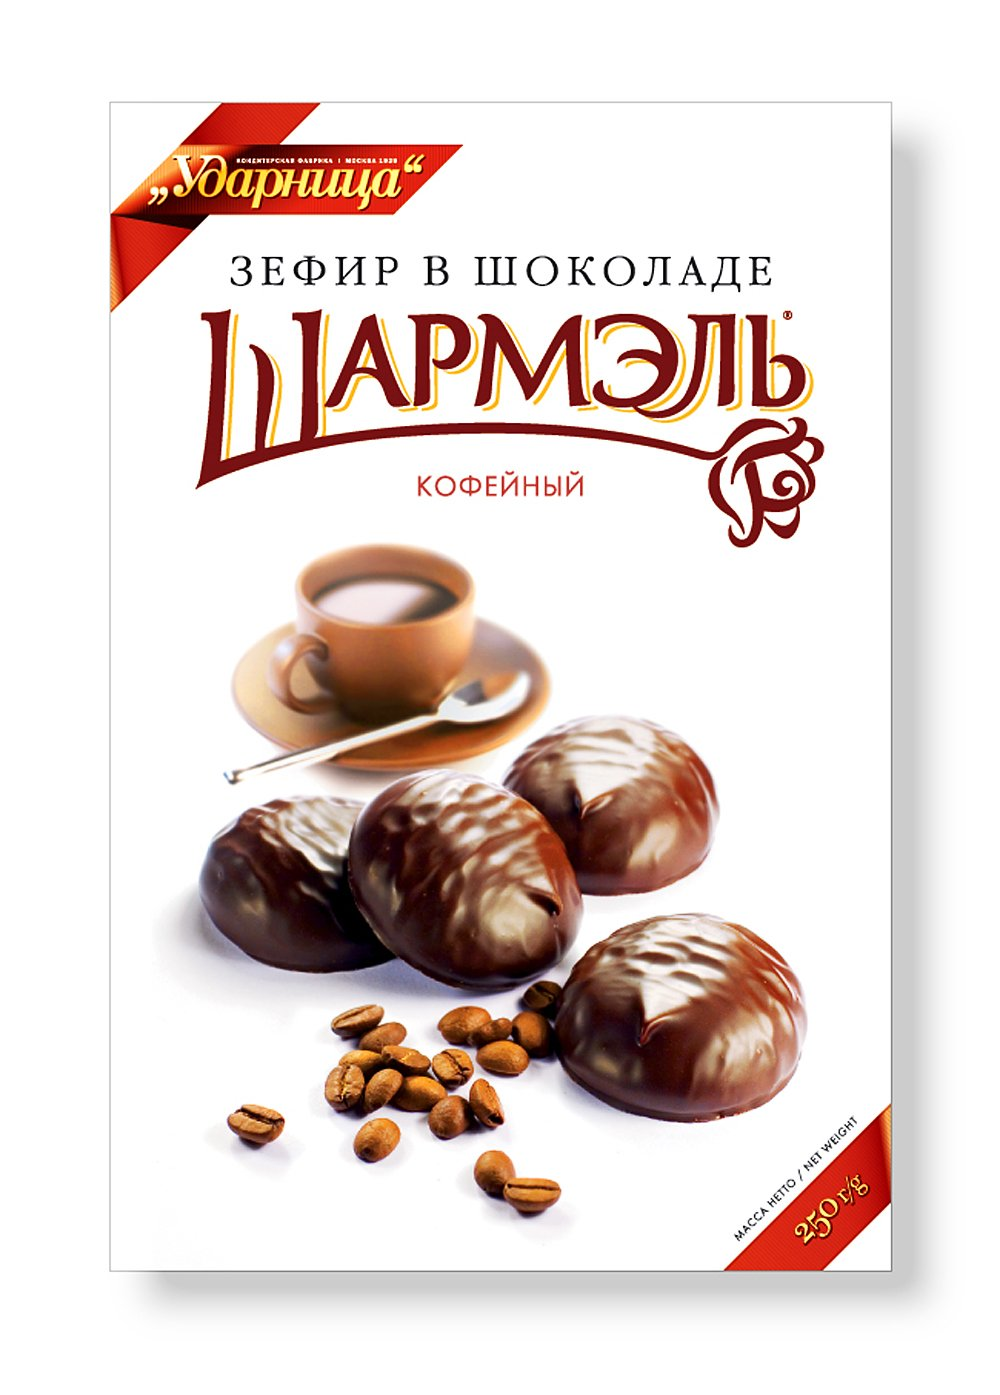 Imported Russian Coffee Marshmallow Chocolate Covered (Set of 3)